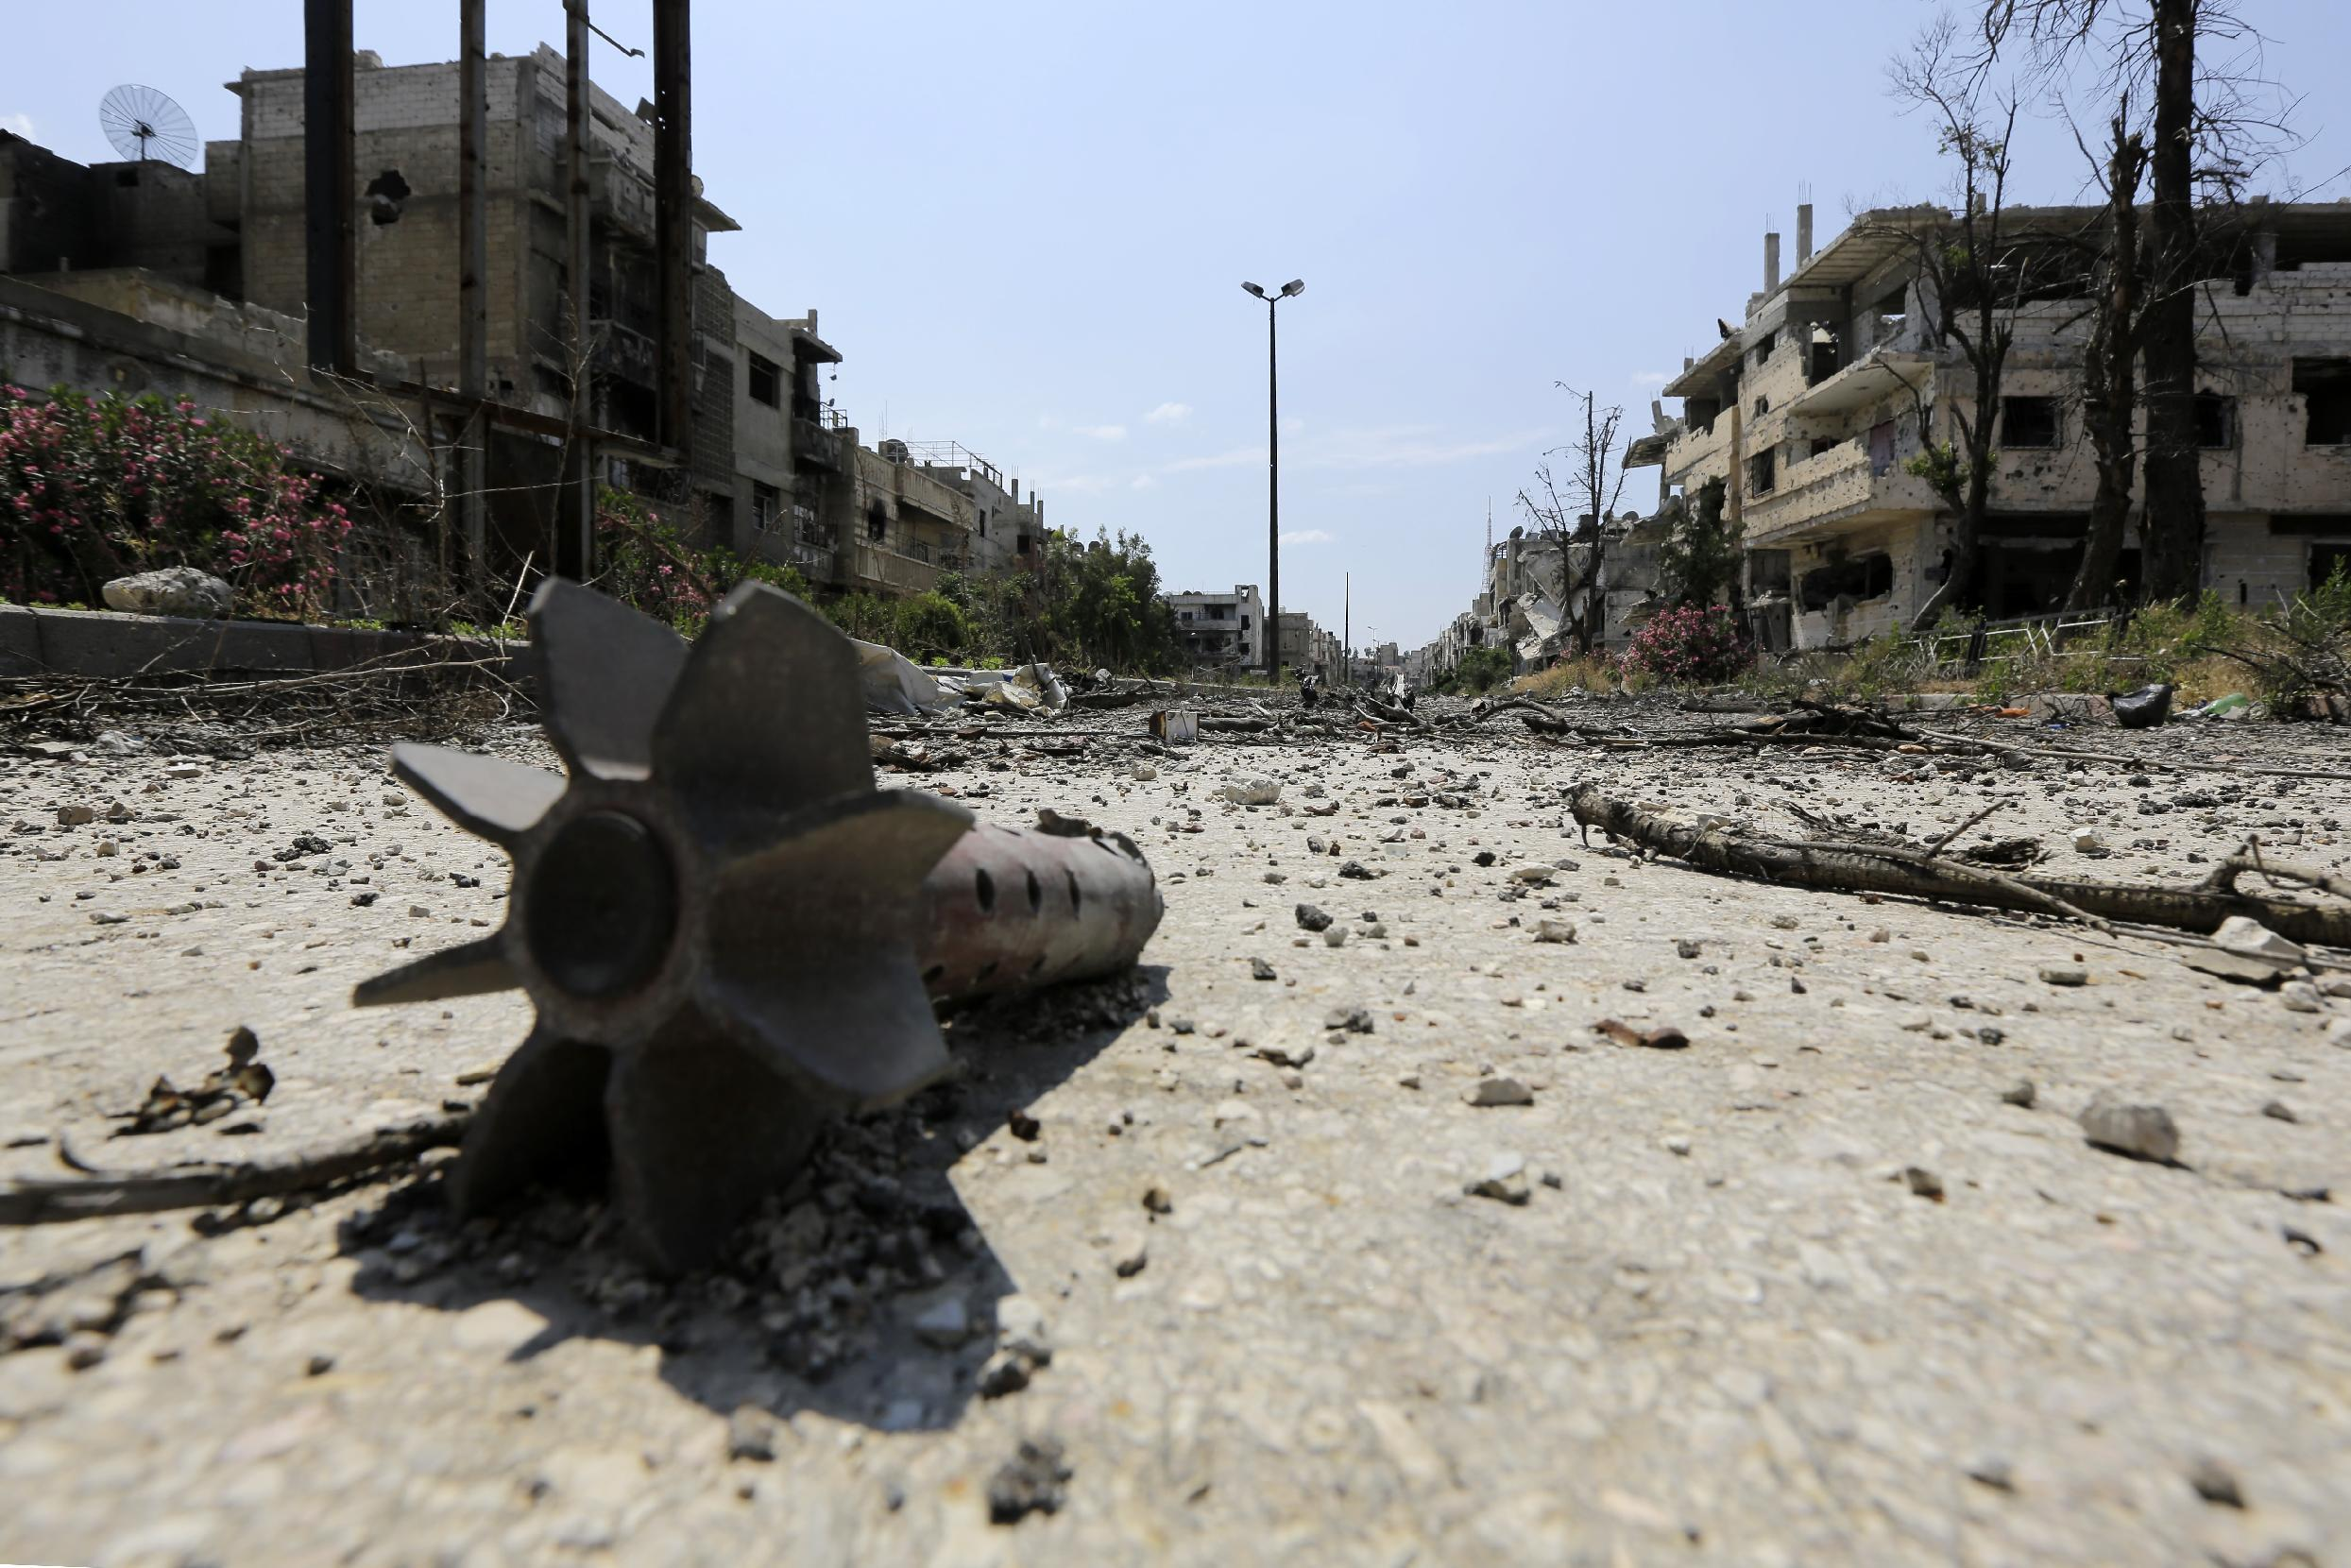 The Syrian civil war has claimed more than 200,000 lives since 2011